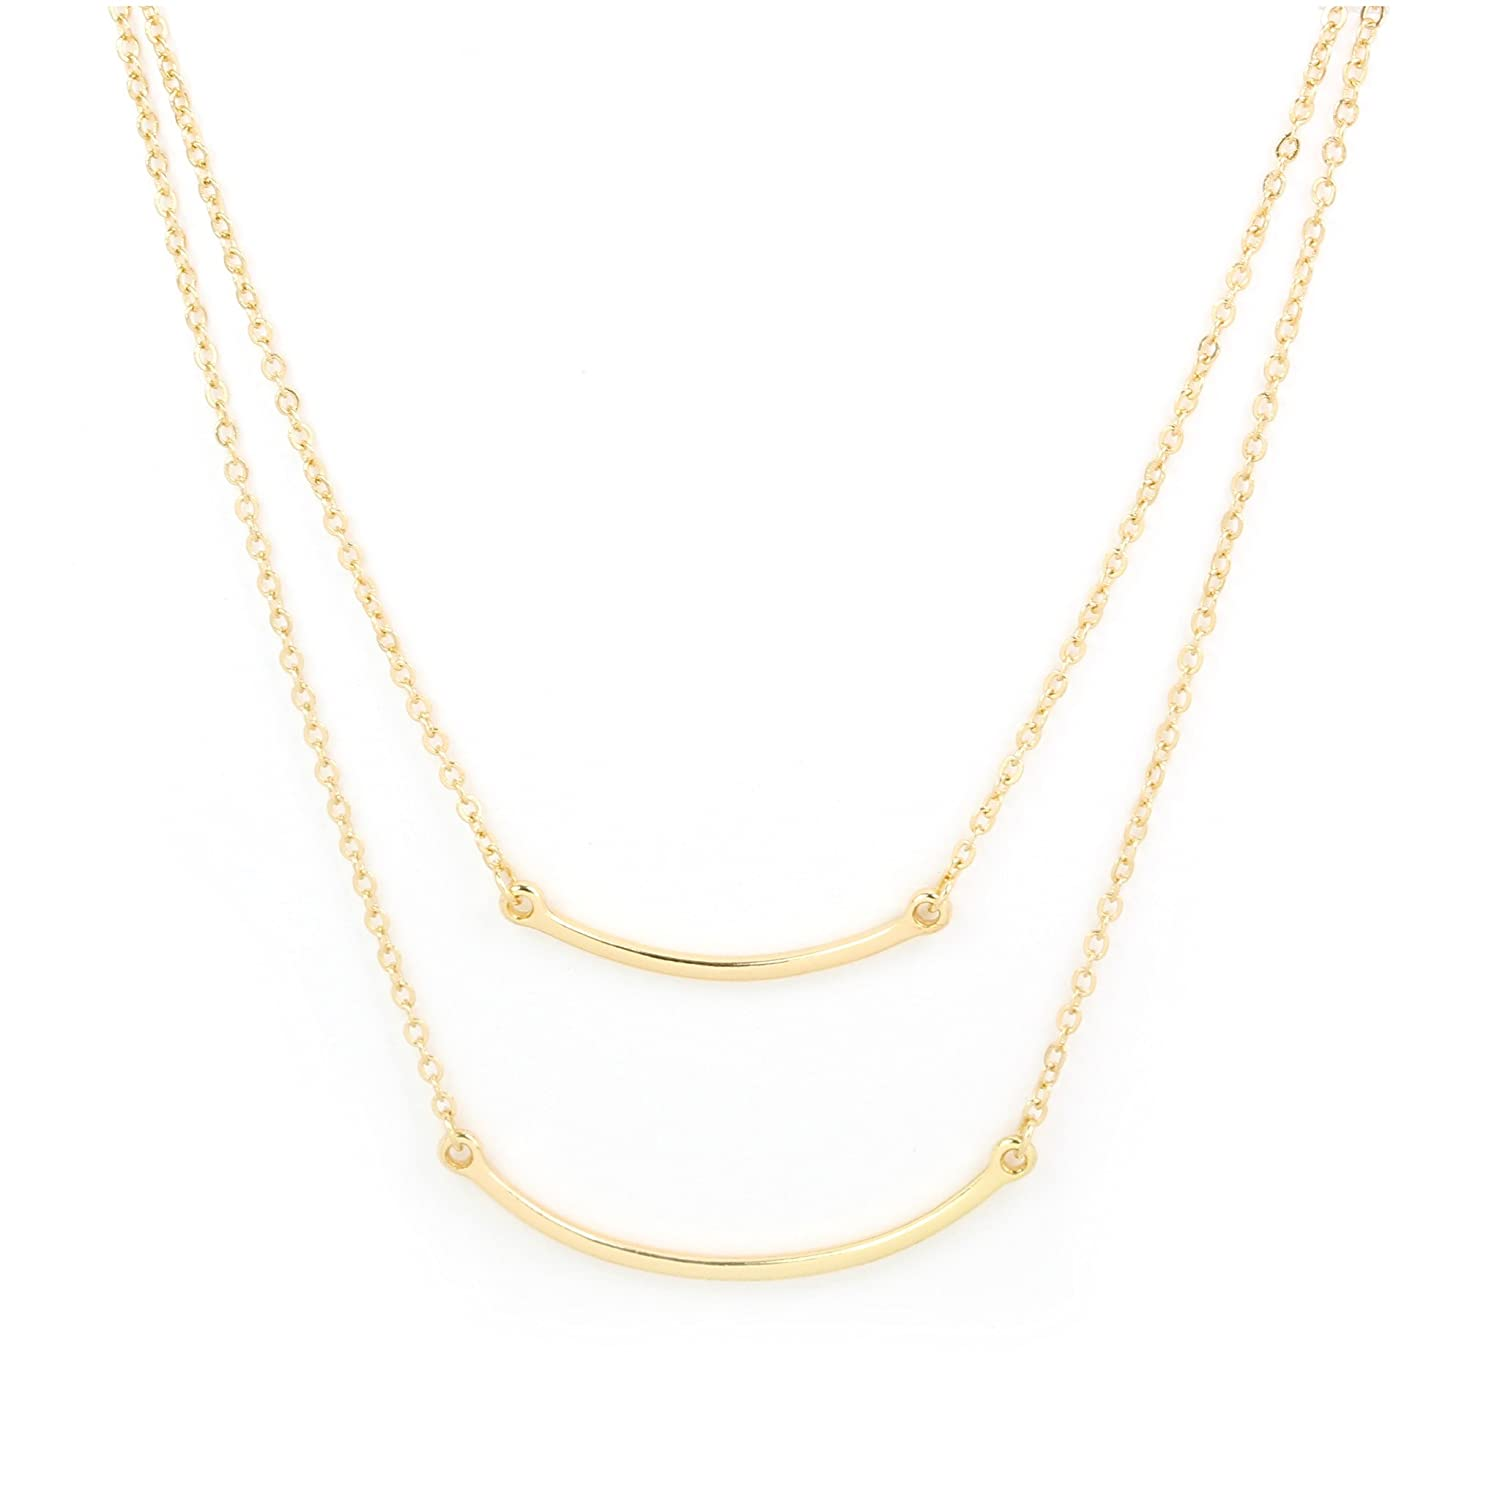 JewelryStorm Gold Double Curved Bar Pendant Necklace